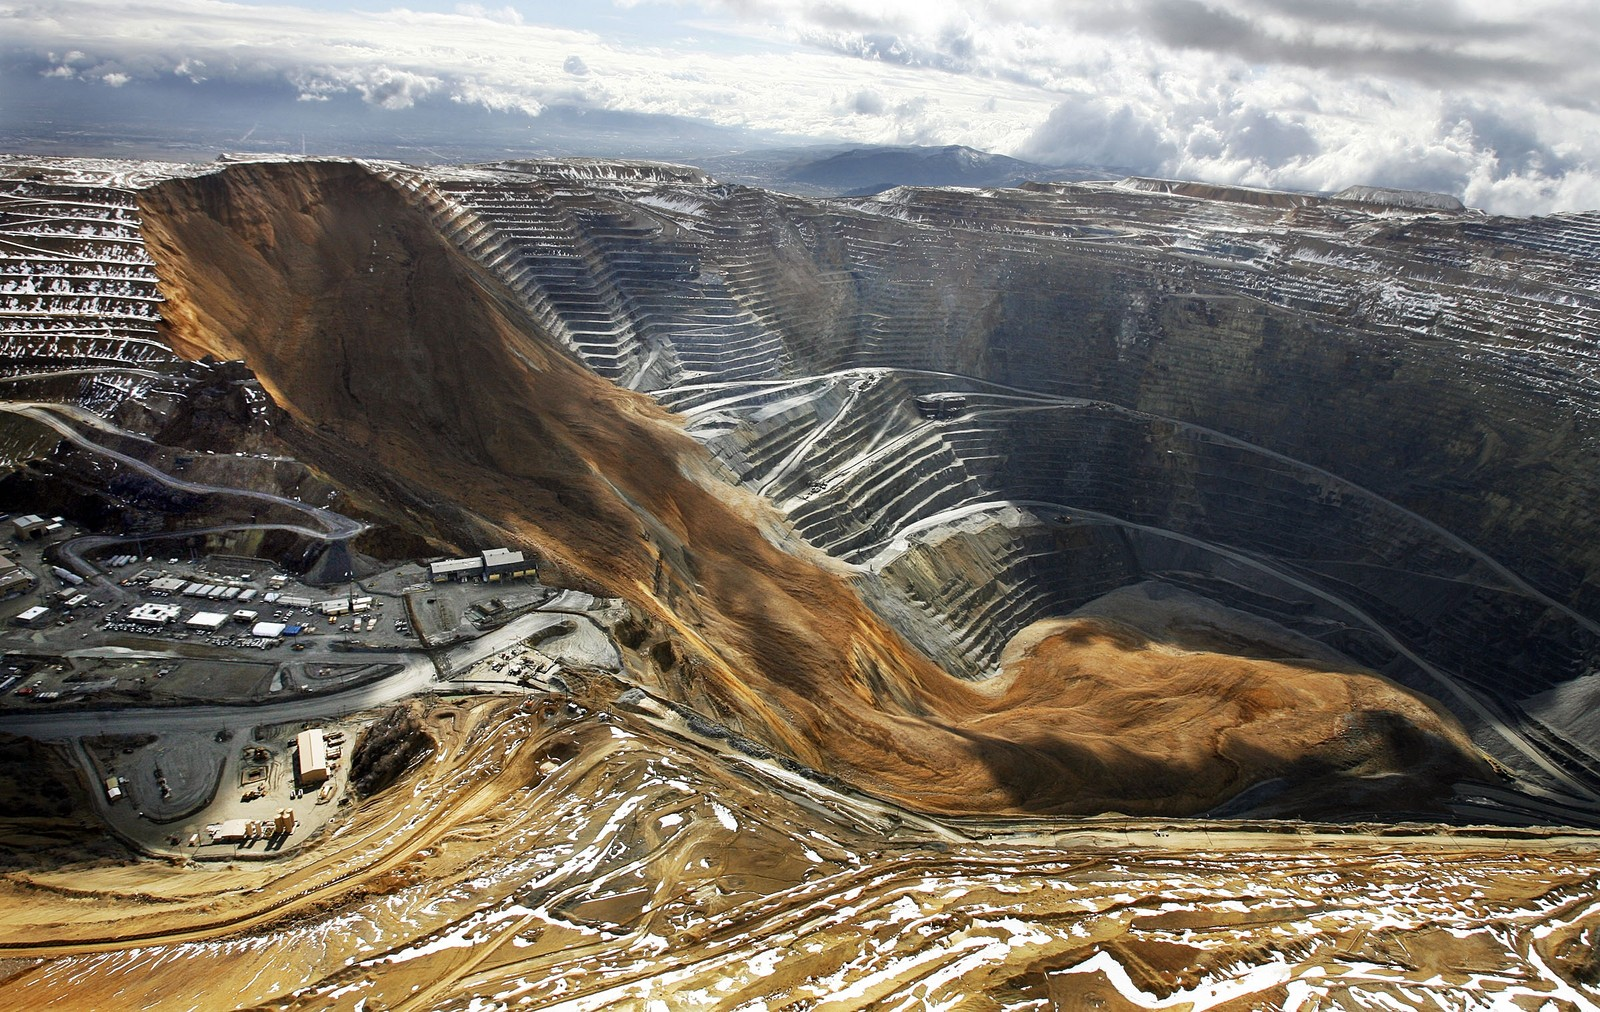 2 - Largest North American landslide on record, Bingham Canyon Mine, Utah, 2013